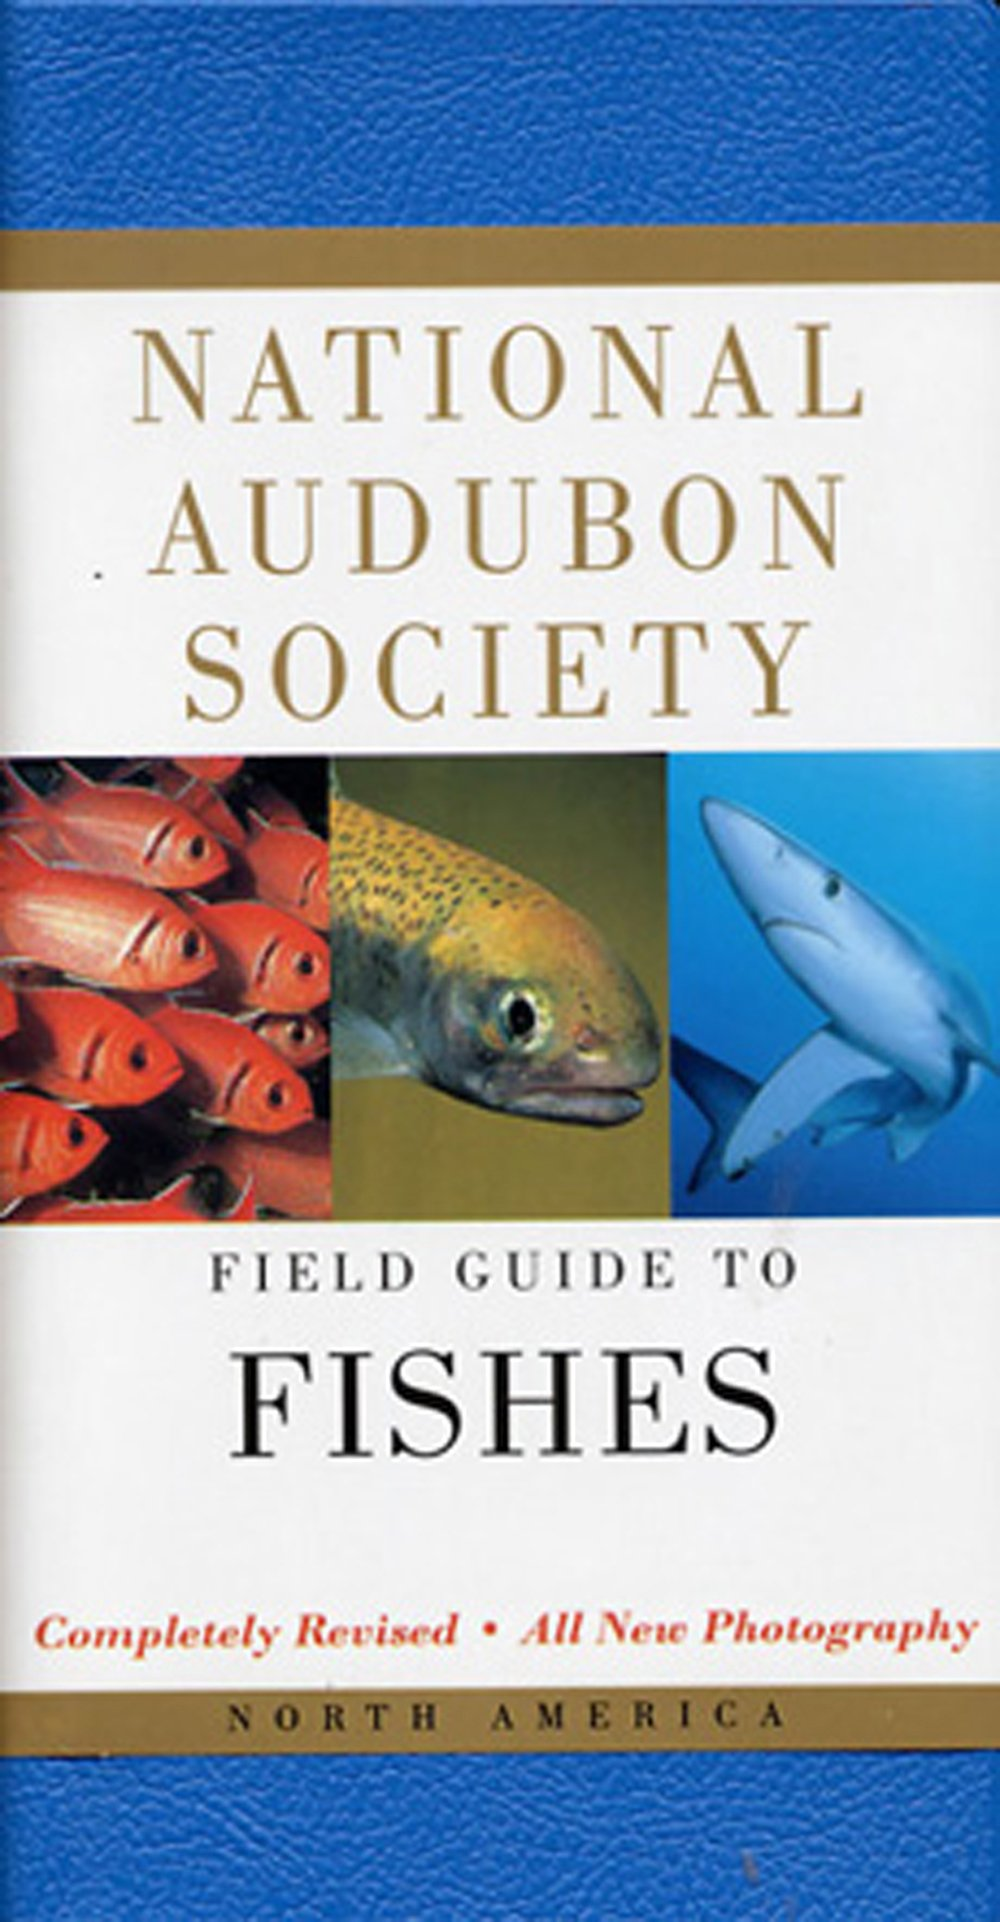 Field Guide to Fishes (National Audubon Society®)